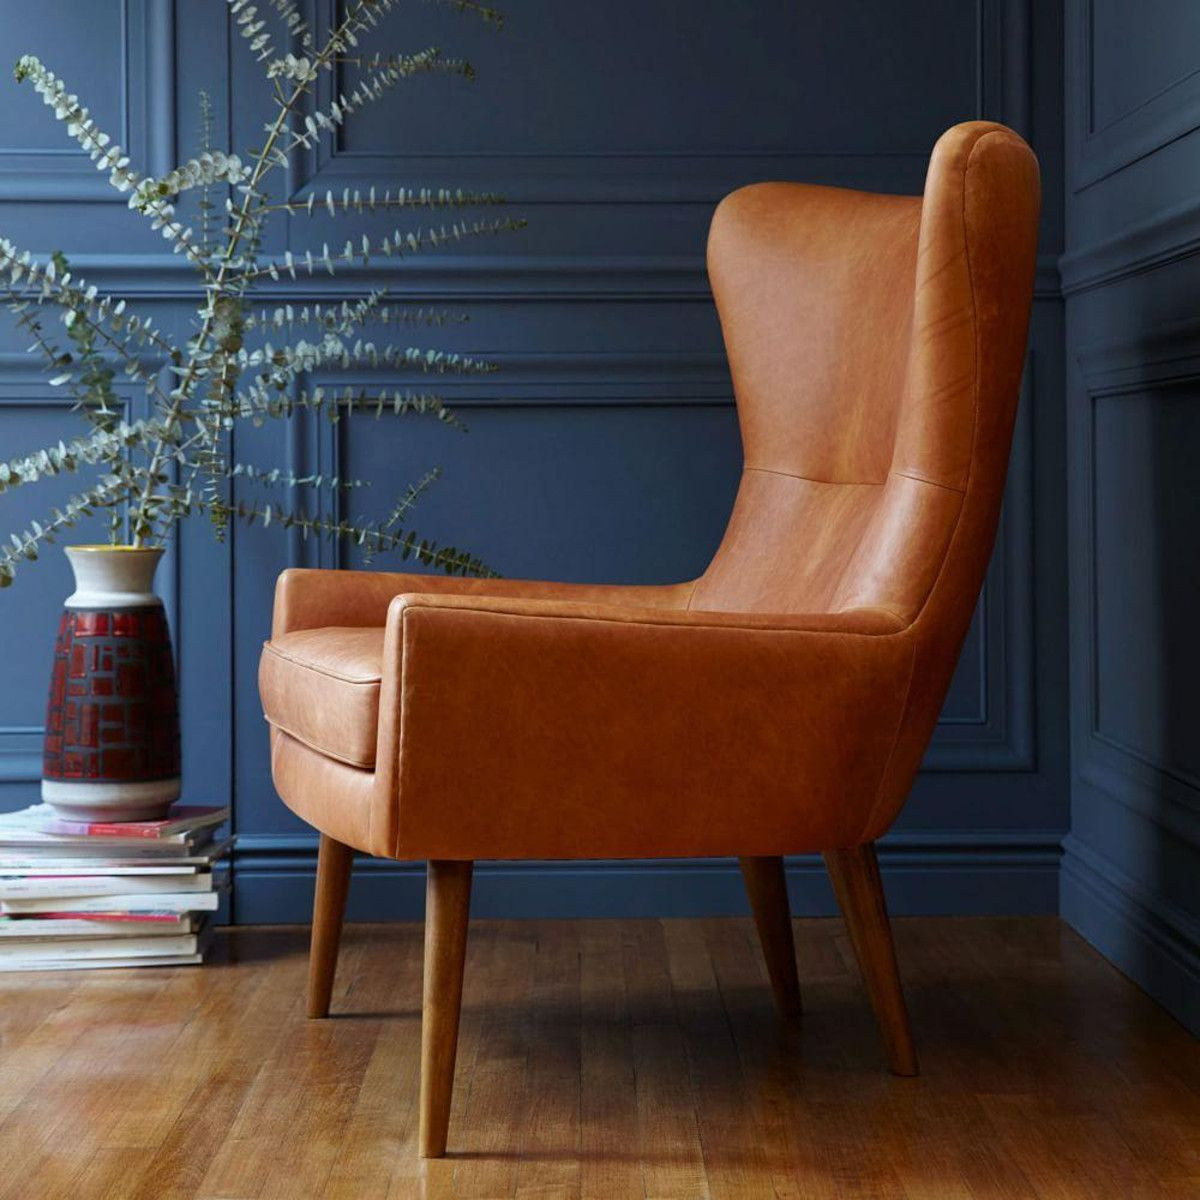 Our Erik Leather Chair Is A Scandinavian Inspired Take On The Classic  Wingback, With A Gently Curved Shape That Invites You To Sink In.